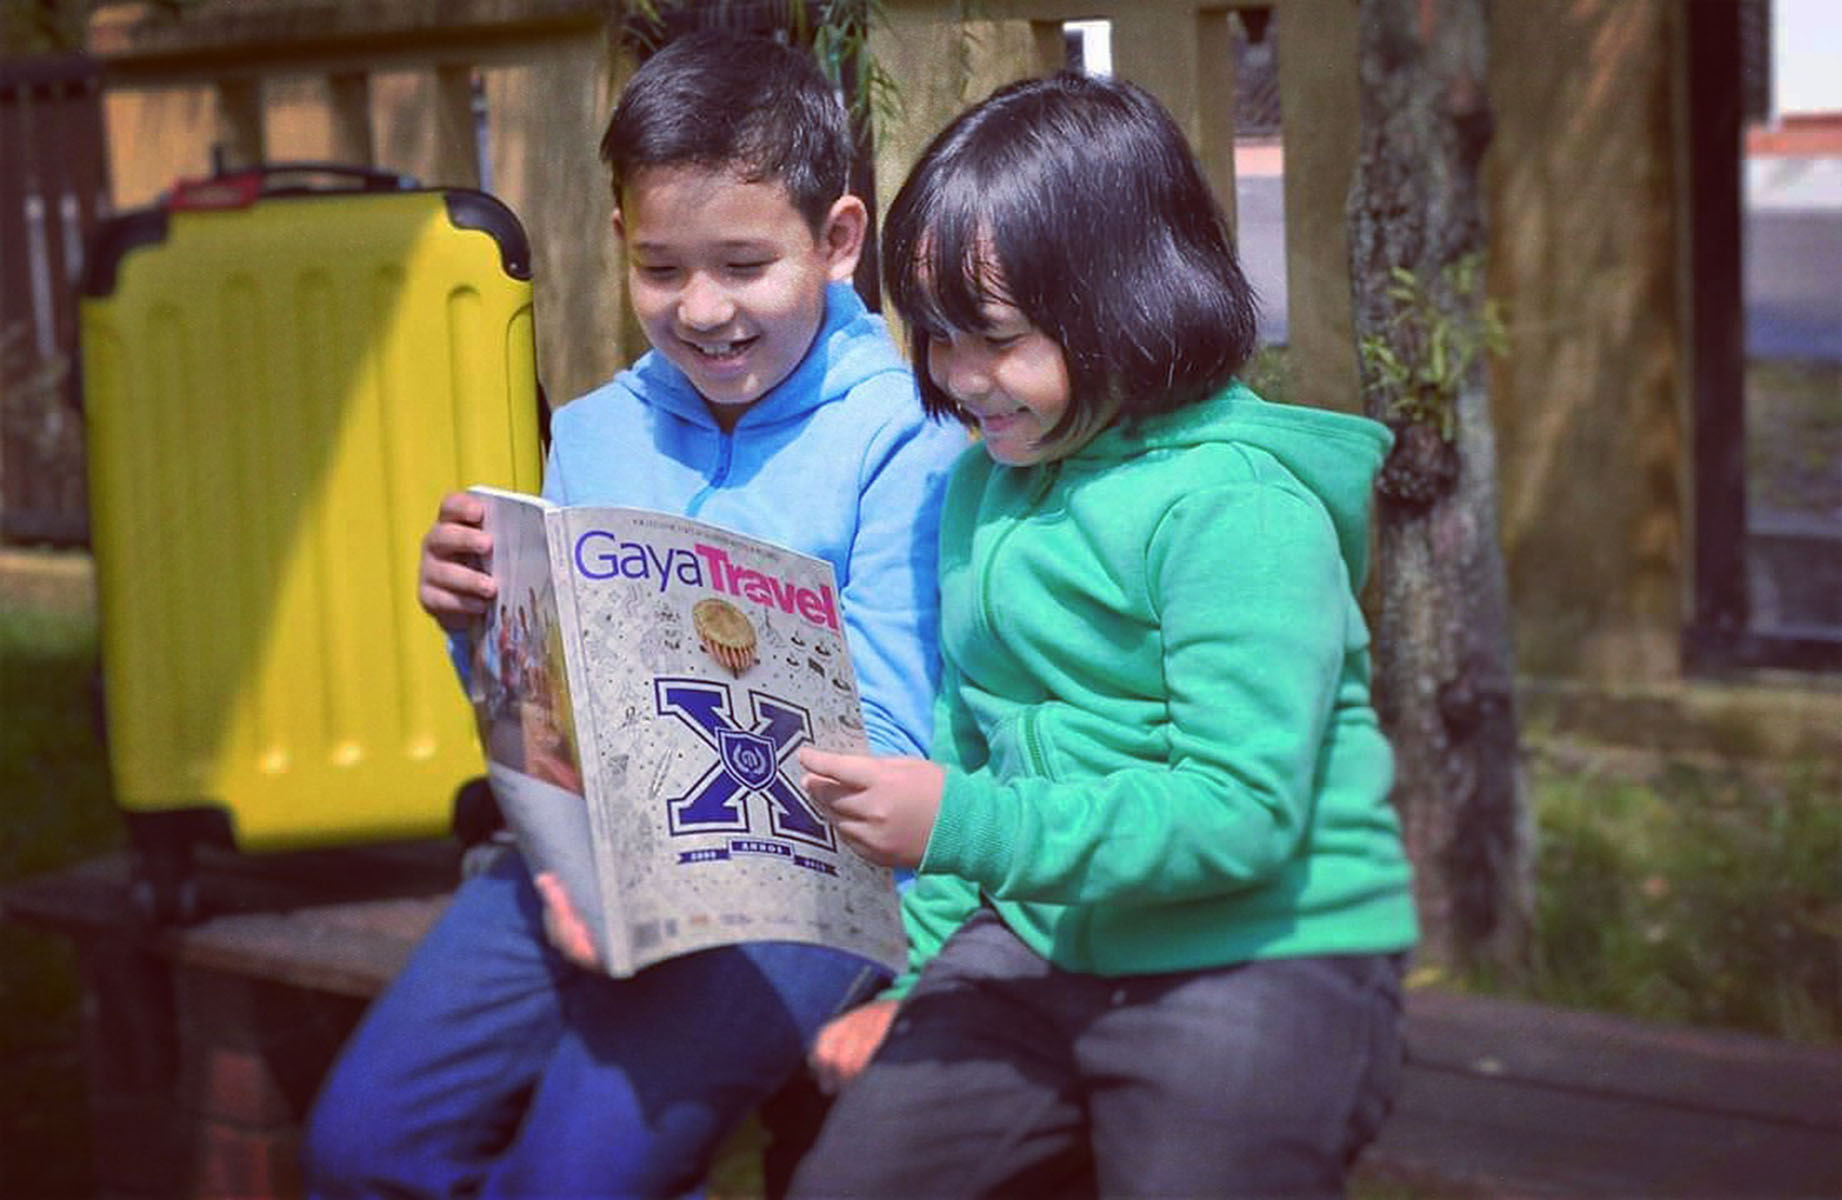 Young boy and girl are reading Gaya Travel Magazine